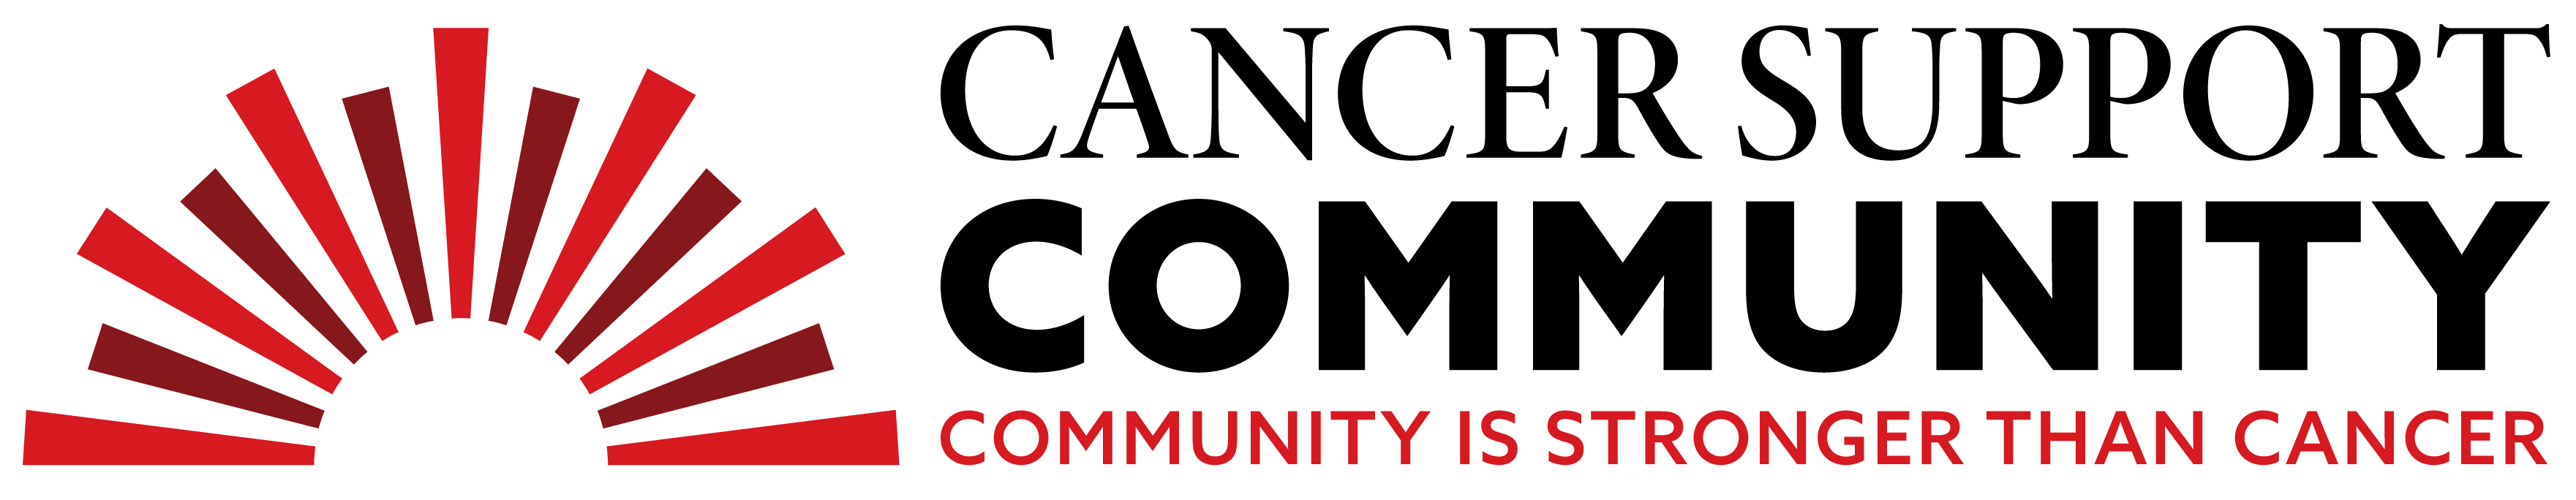 Cancer Support Community logo_NEW